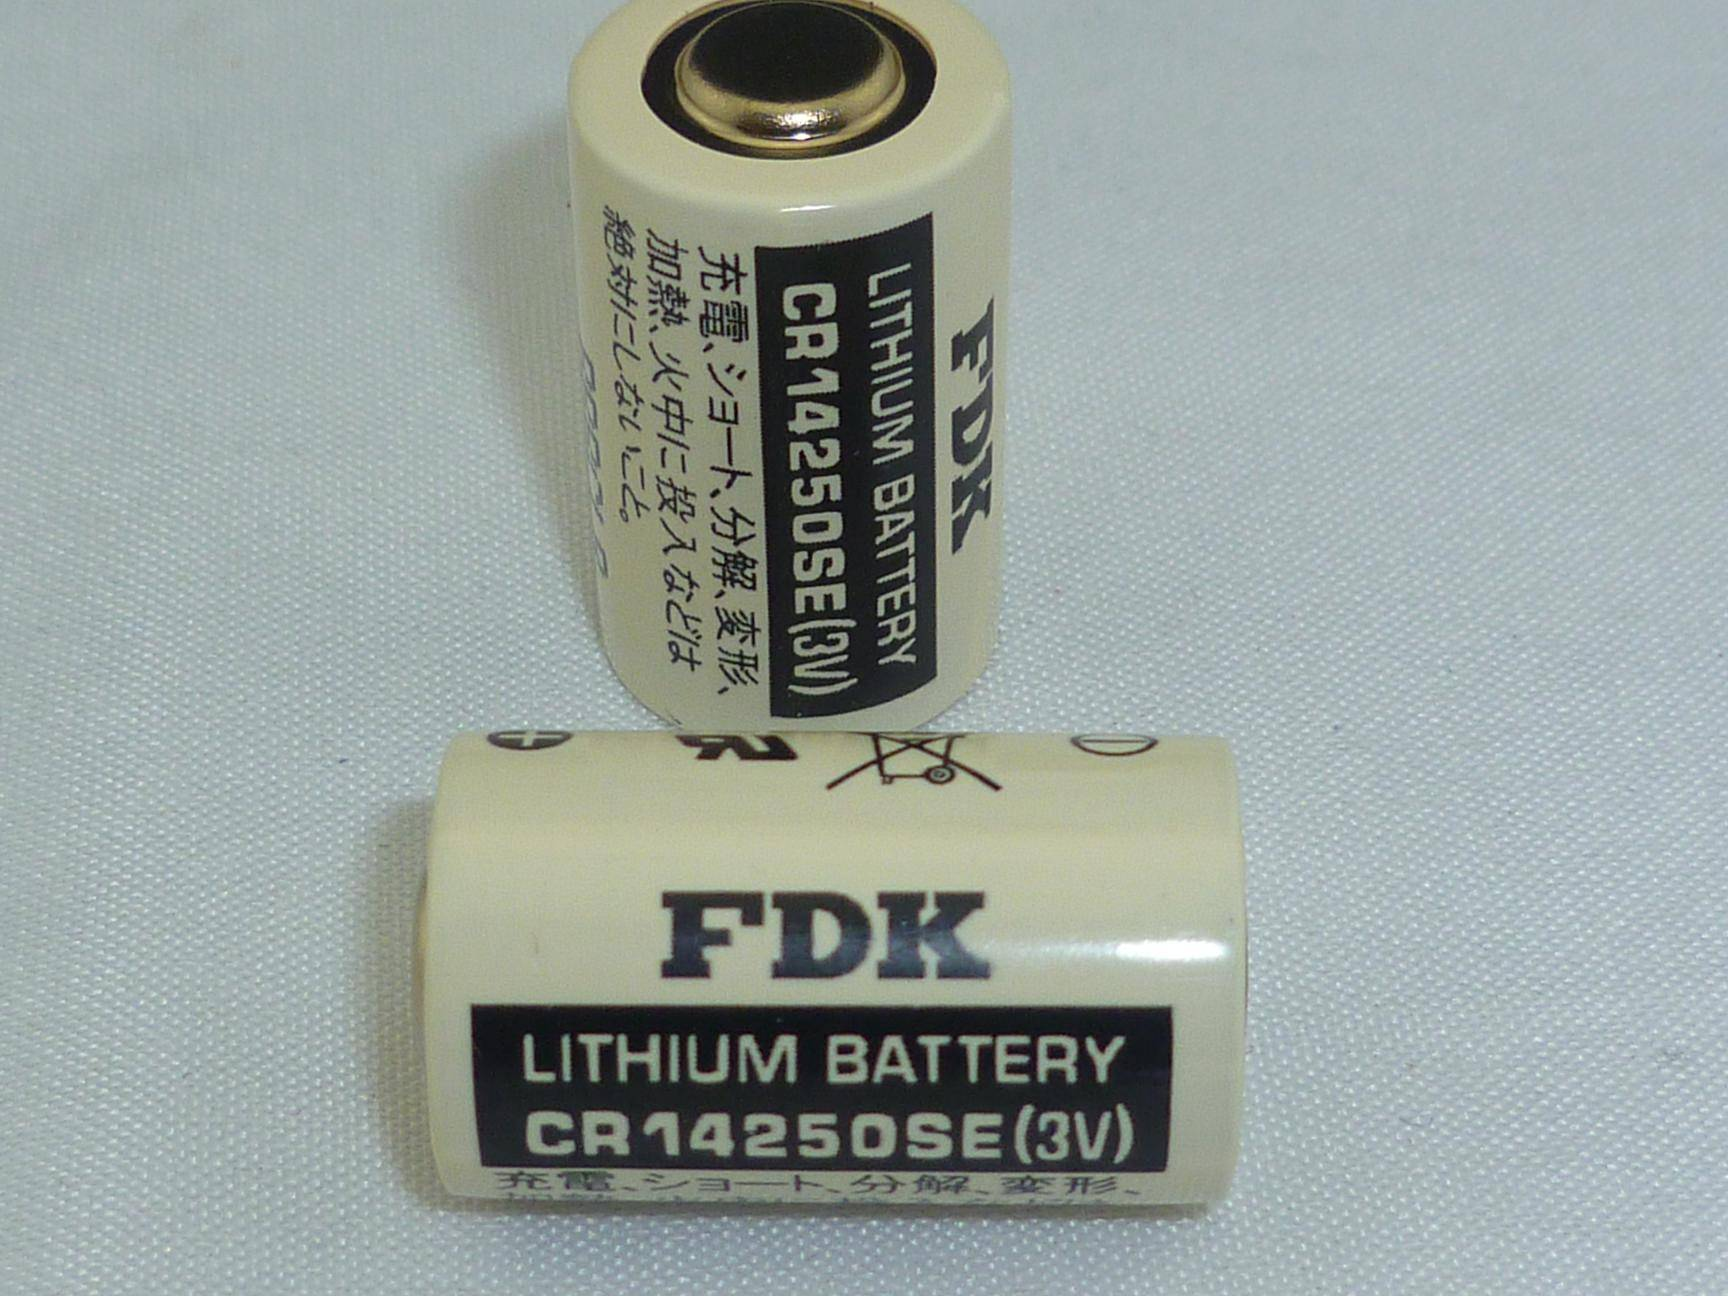 3V Lithium Battery FDK CR14250SE